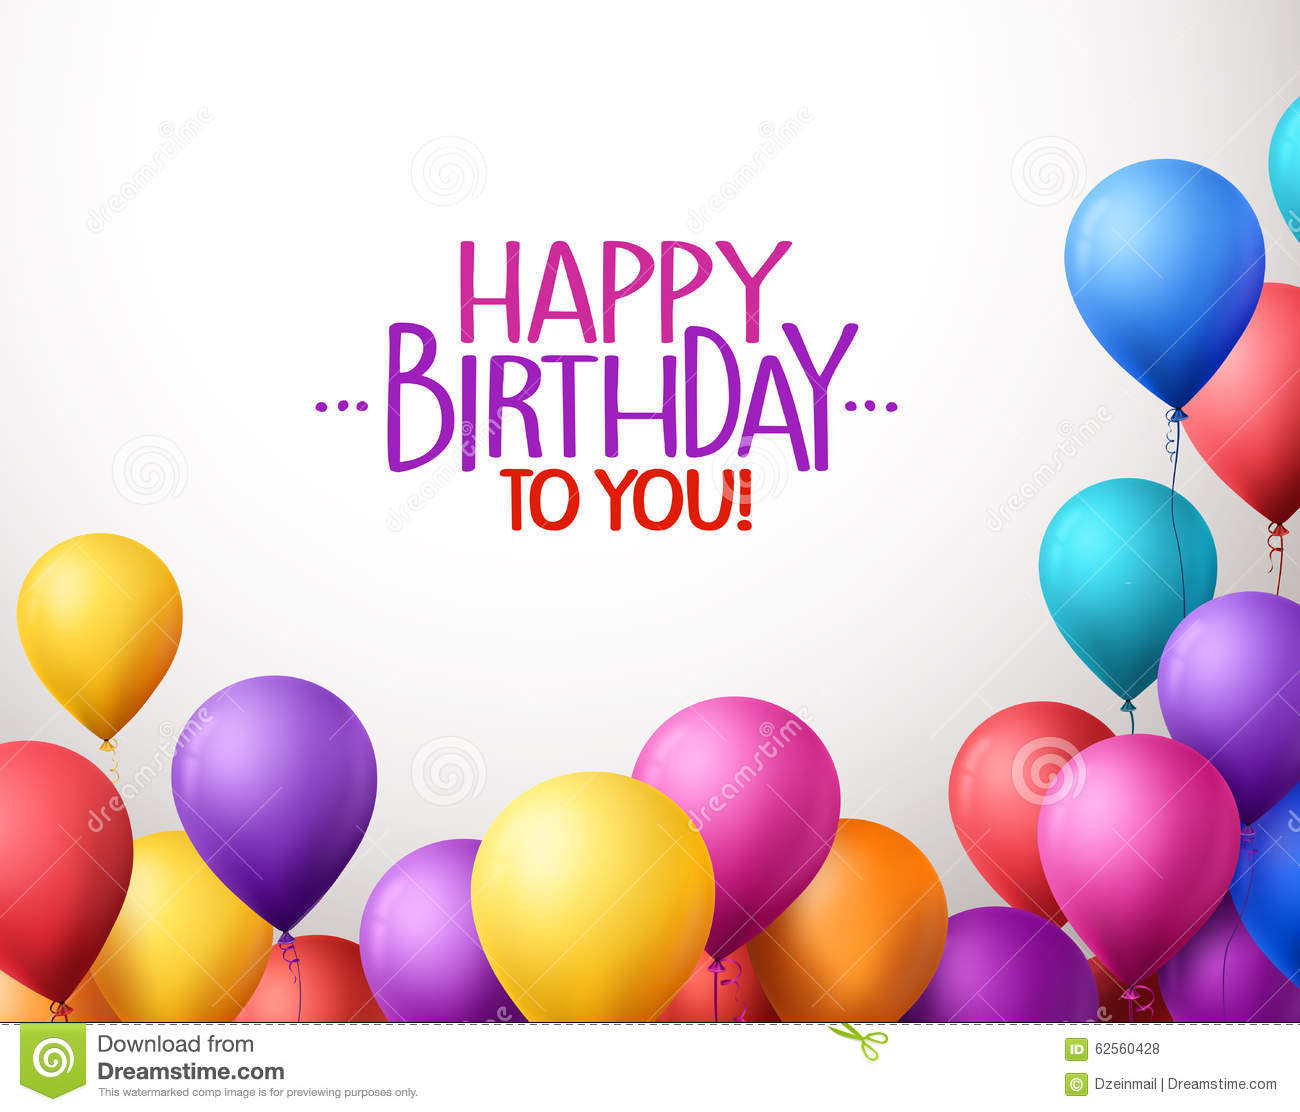 HAPPY BIRTHDAY 3D Colorful Text Royalty-Free Stock Image